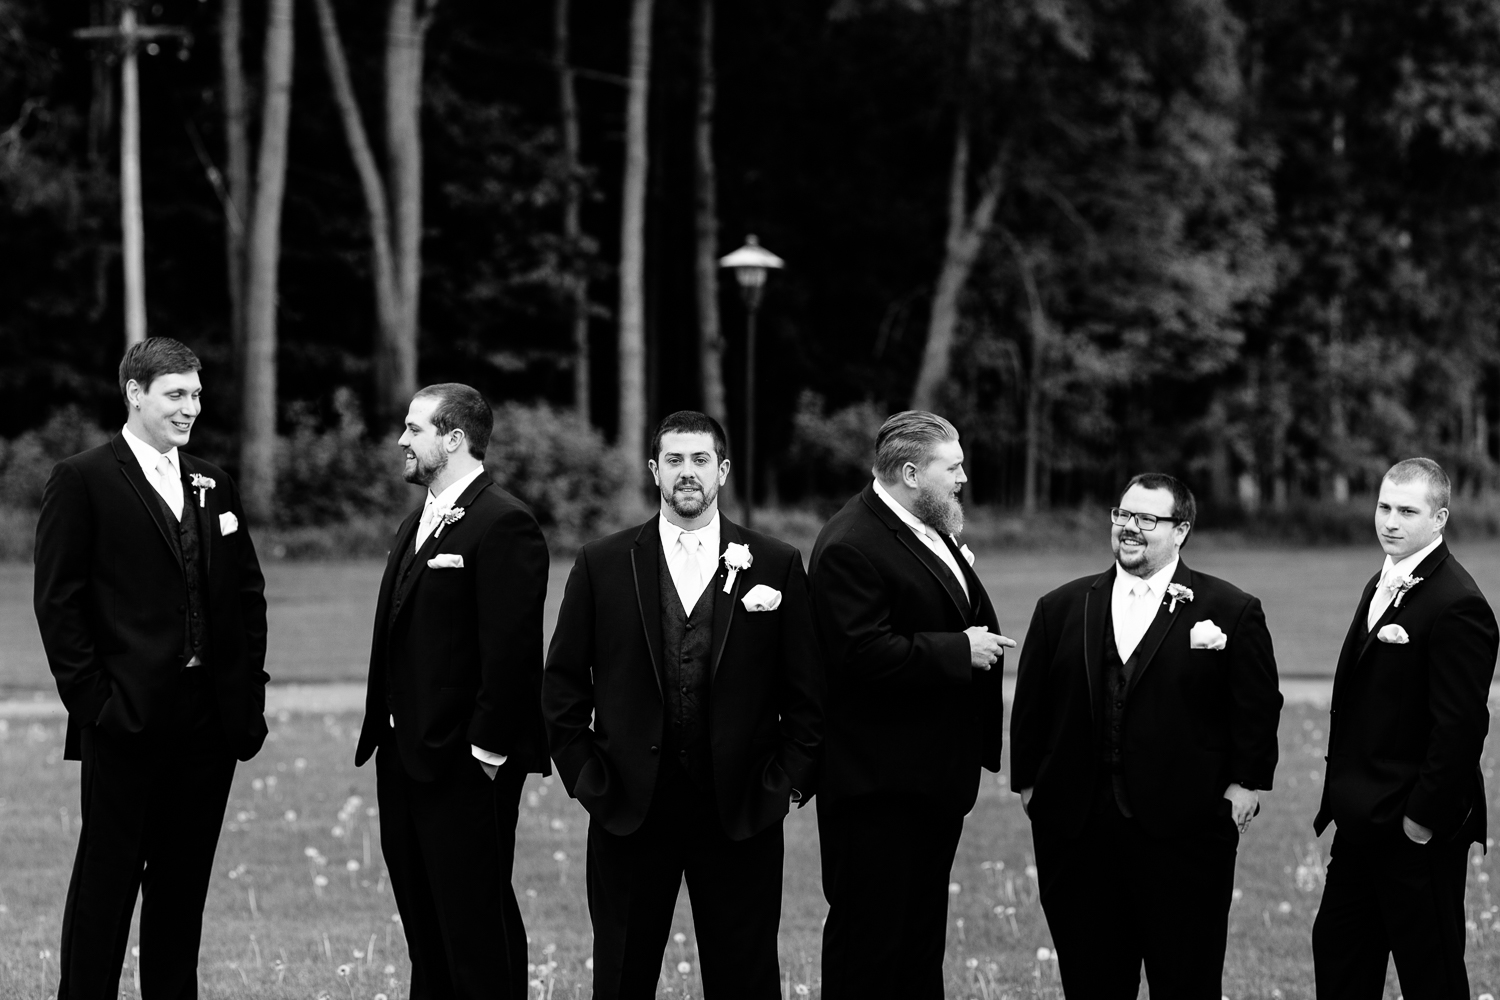 A black and white image of the groom and groomsmen. The groom looks at the camera while the groomsmens talk behind him.